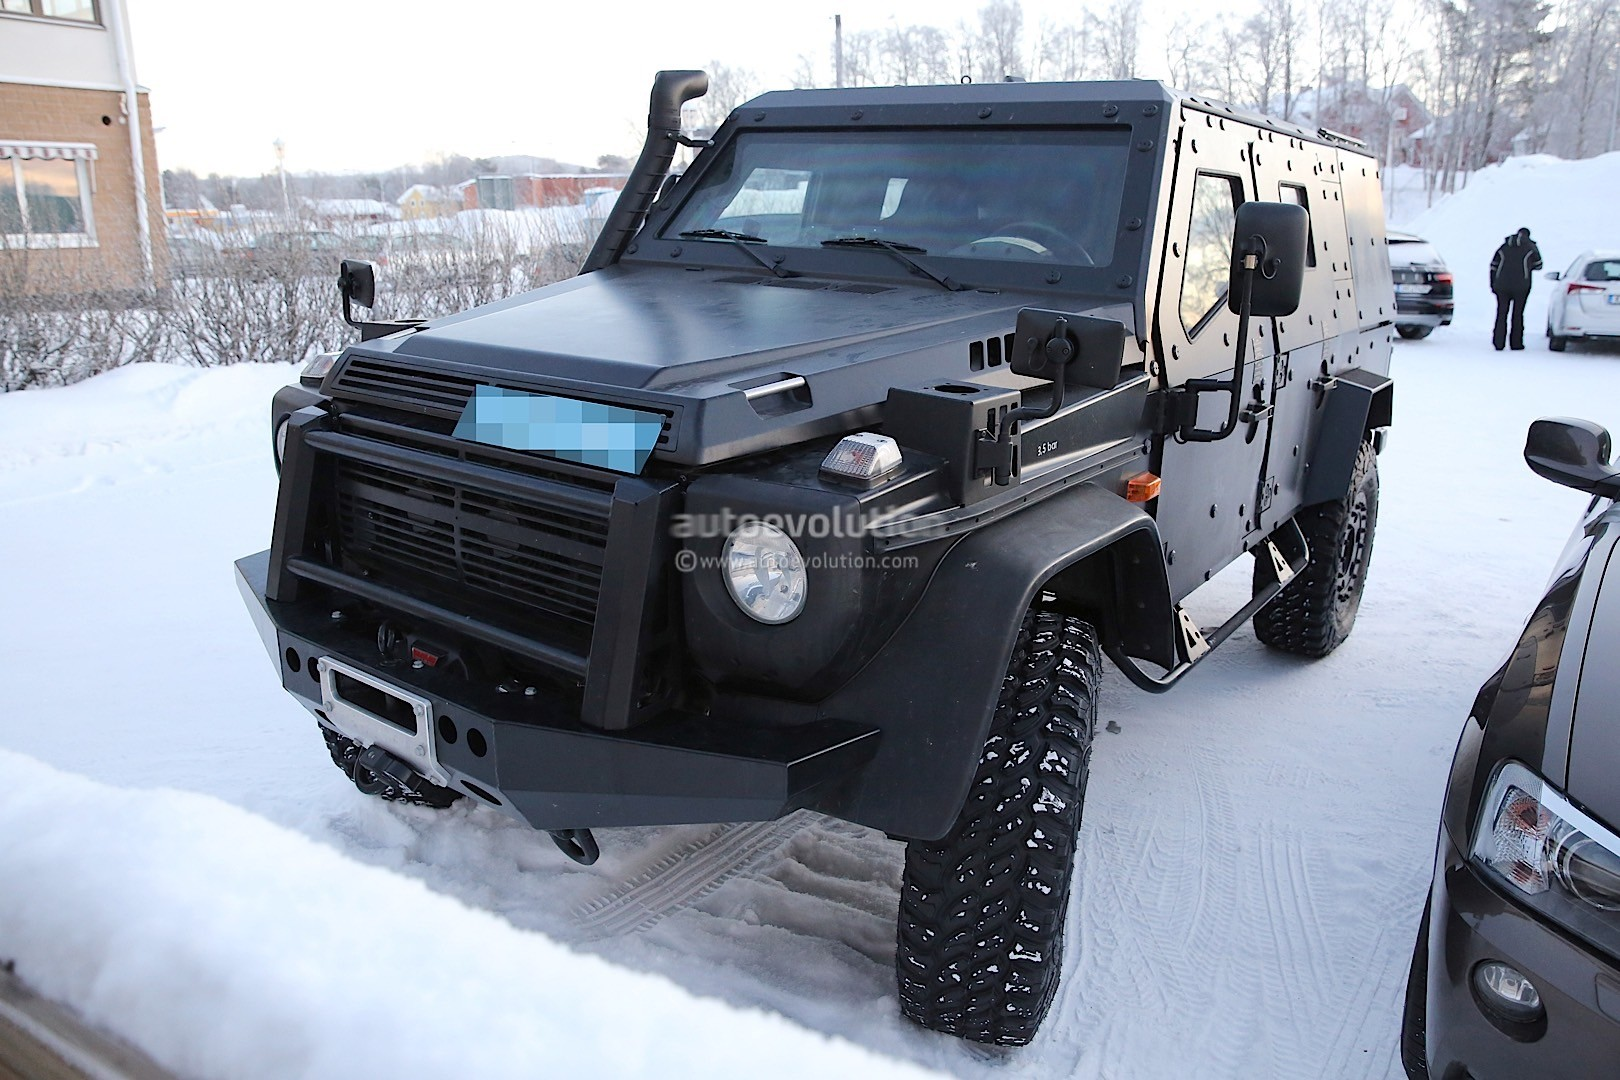 Look What The Snowcat Dragged In A Mercedes Benz G Class